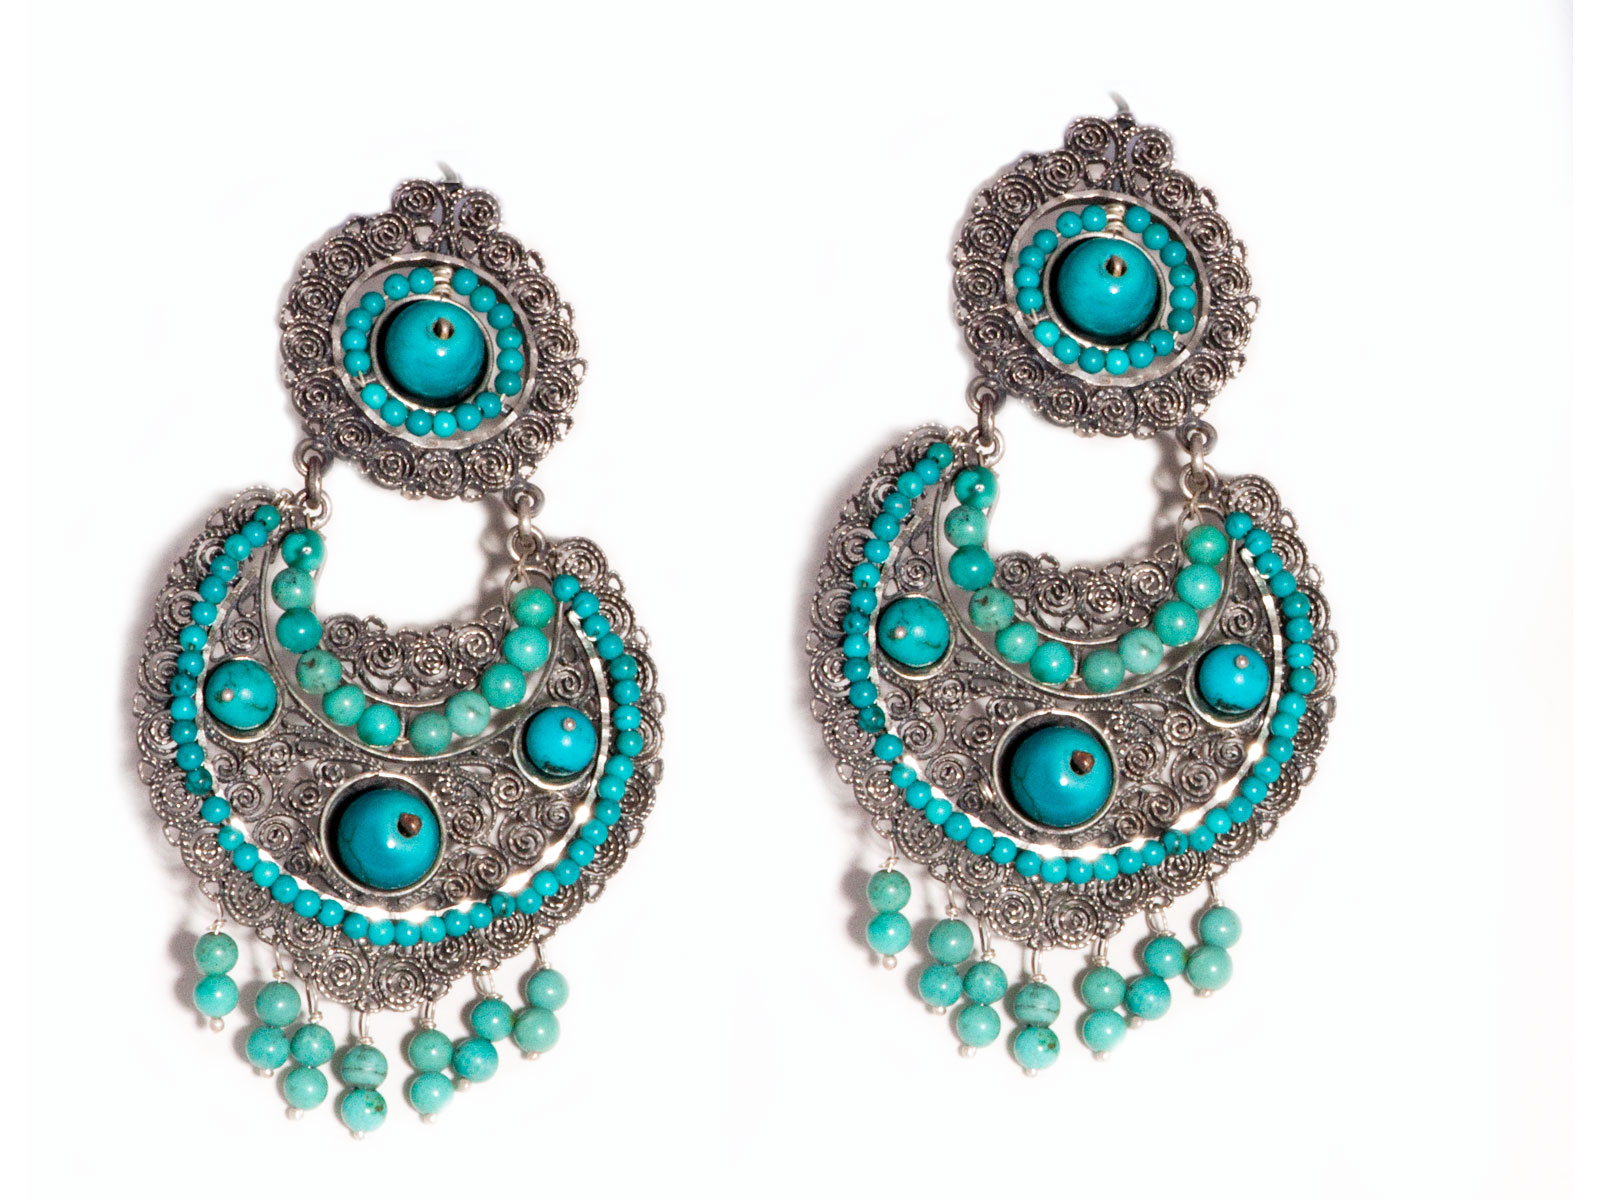 Turquoise Filigree Dangle Earrings